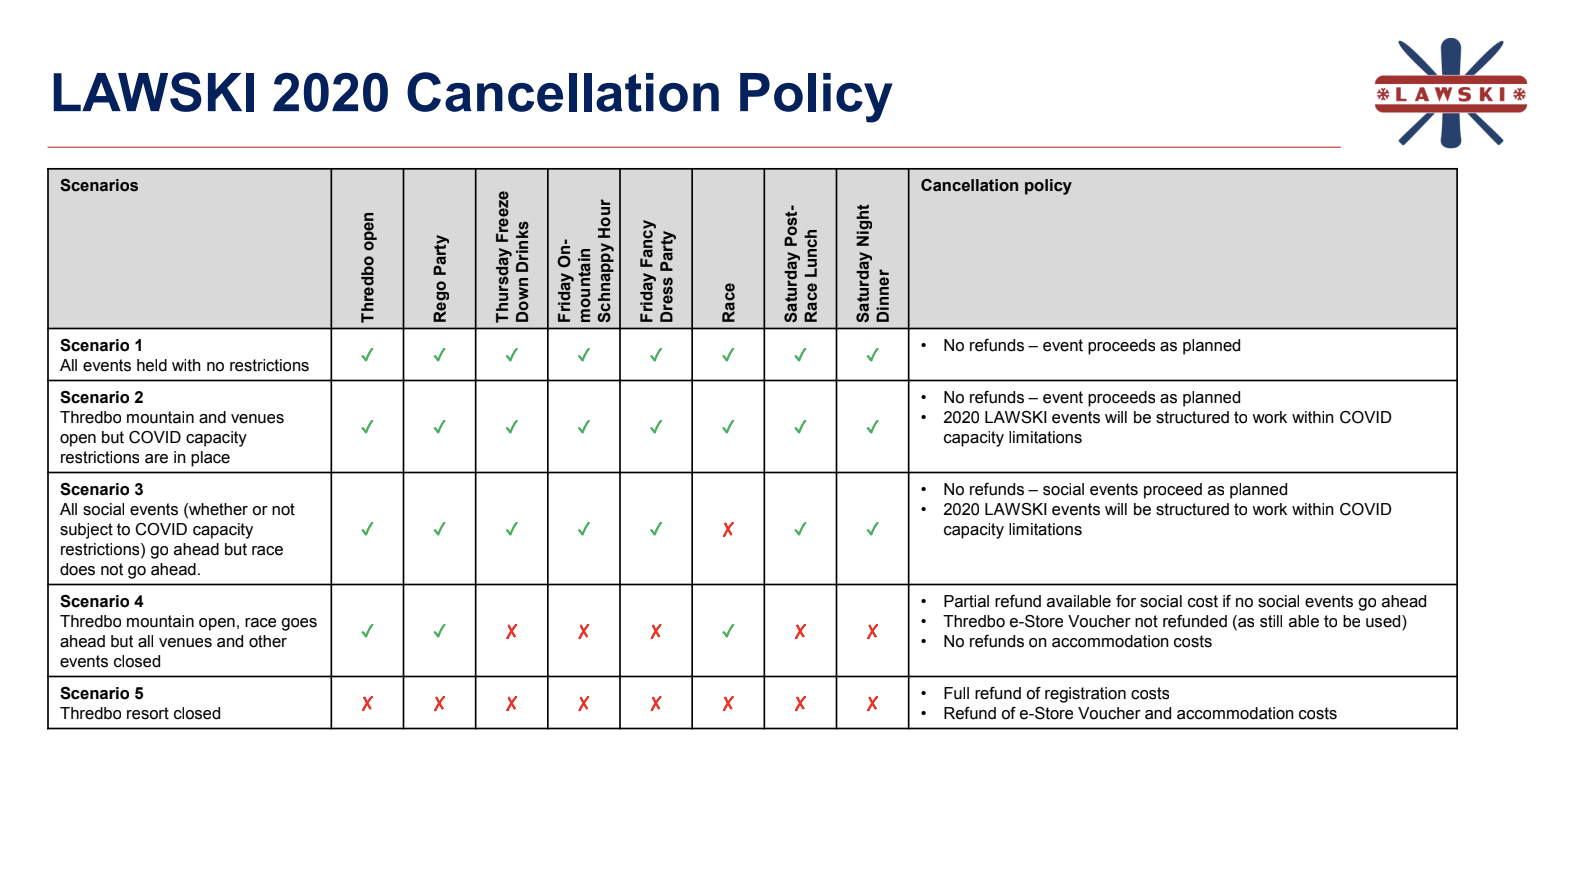 LAWSKI 2020 Cancellation Policy